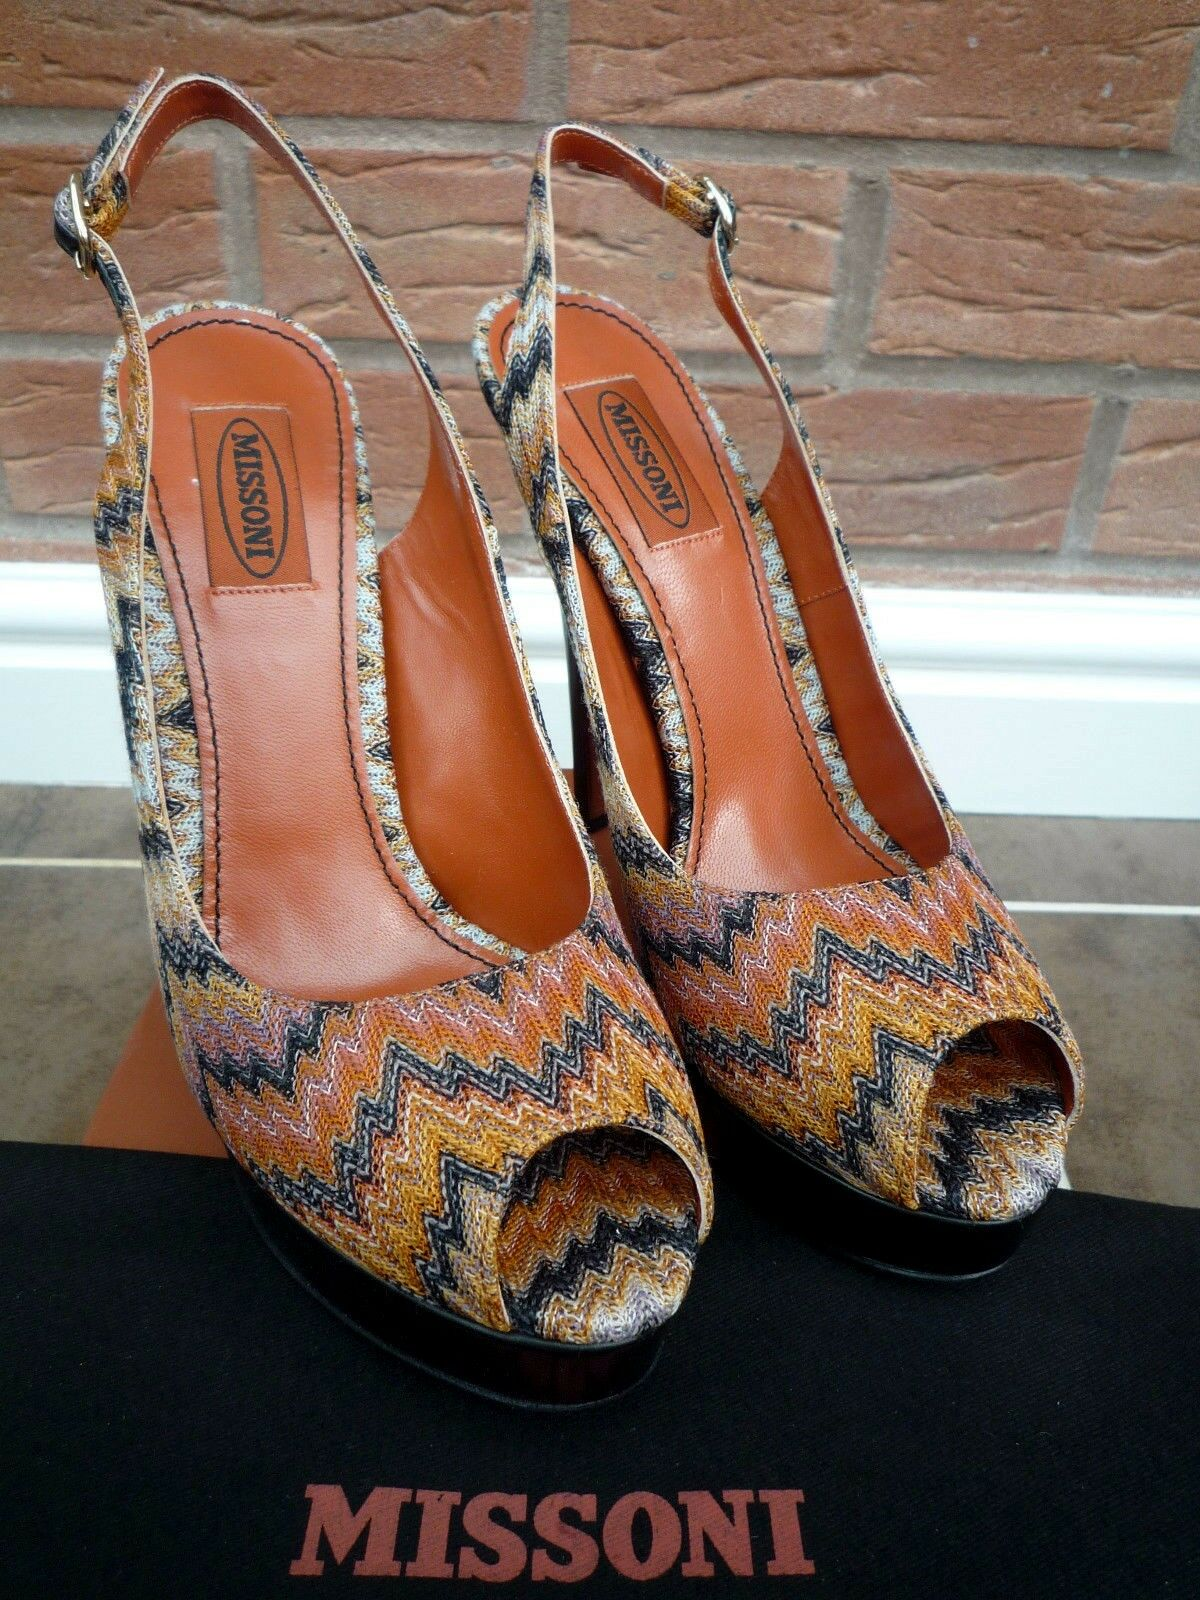 MISSONI RASHEL Schuhe SNAKE PEEP TOE STILETTO Schuhe RASHEL RETAIL  SIZE 5 MADE IN ITALY 0df040